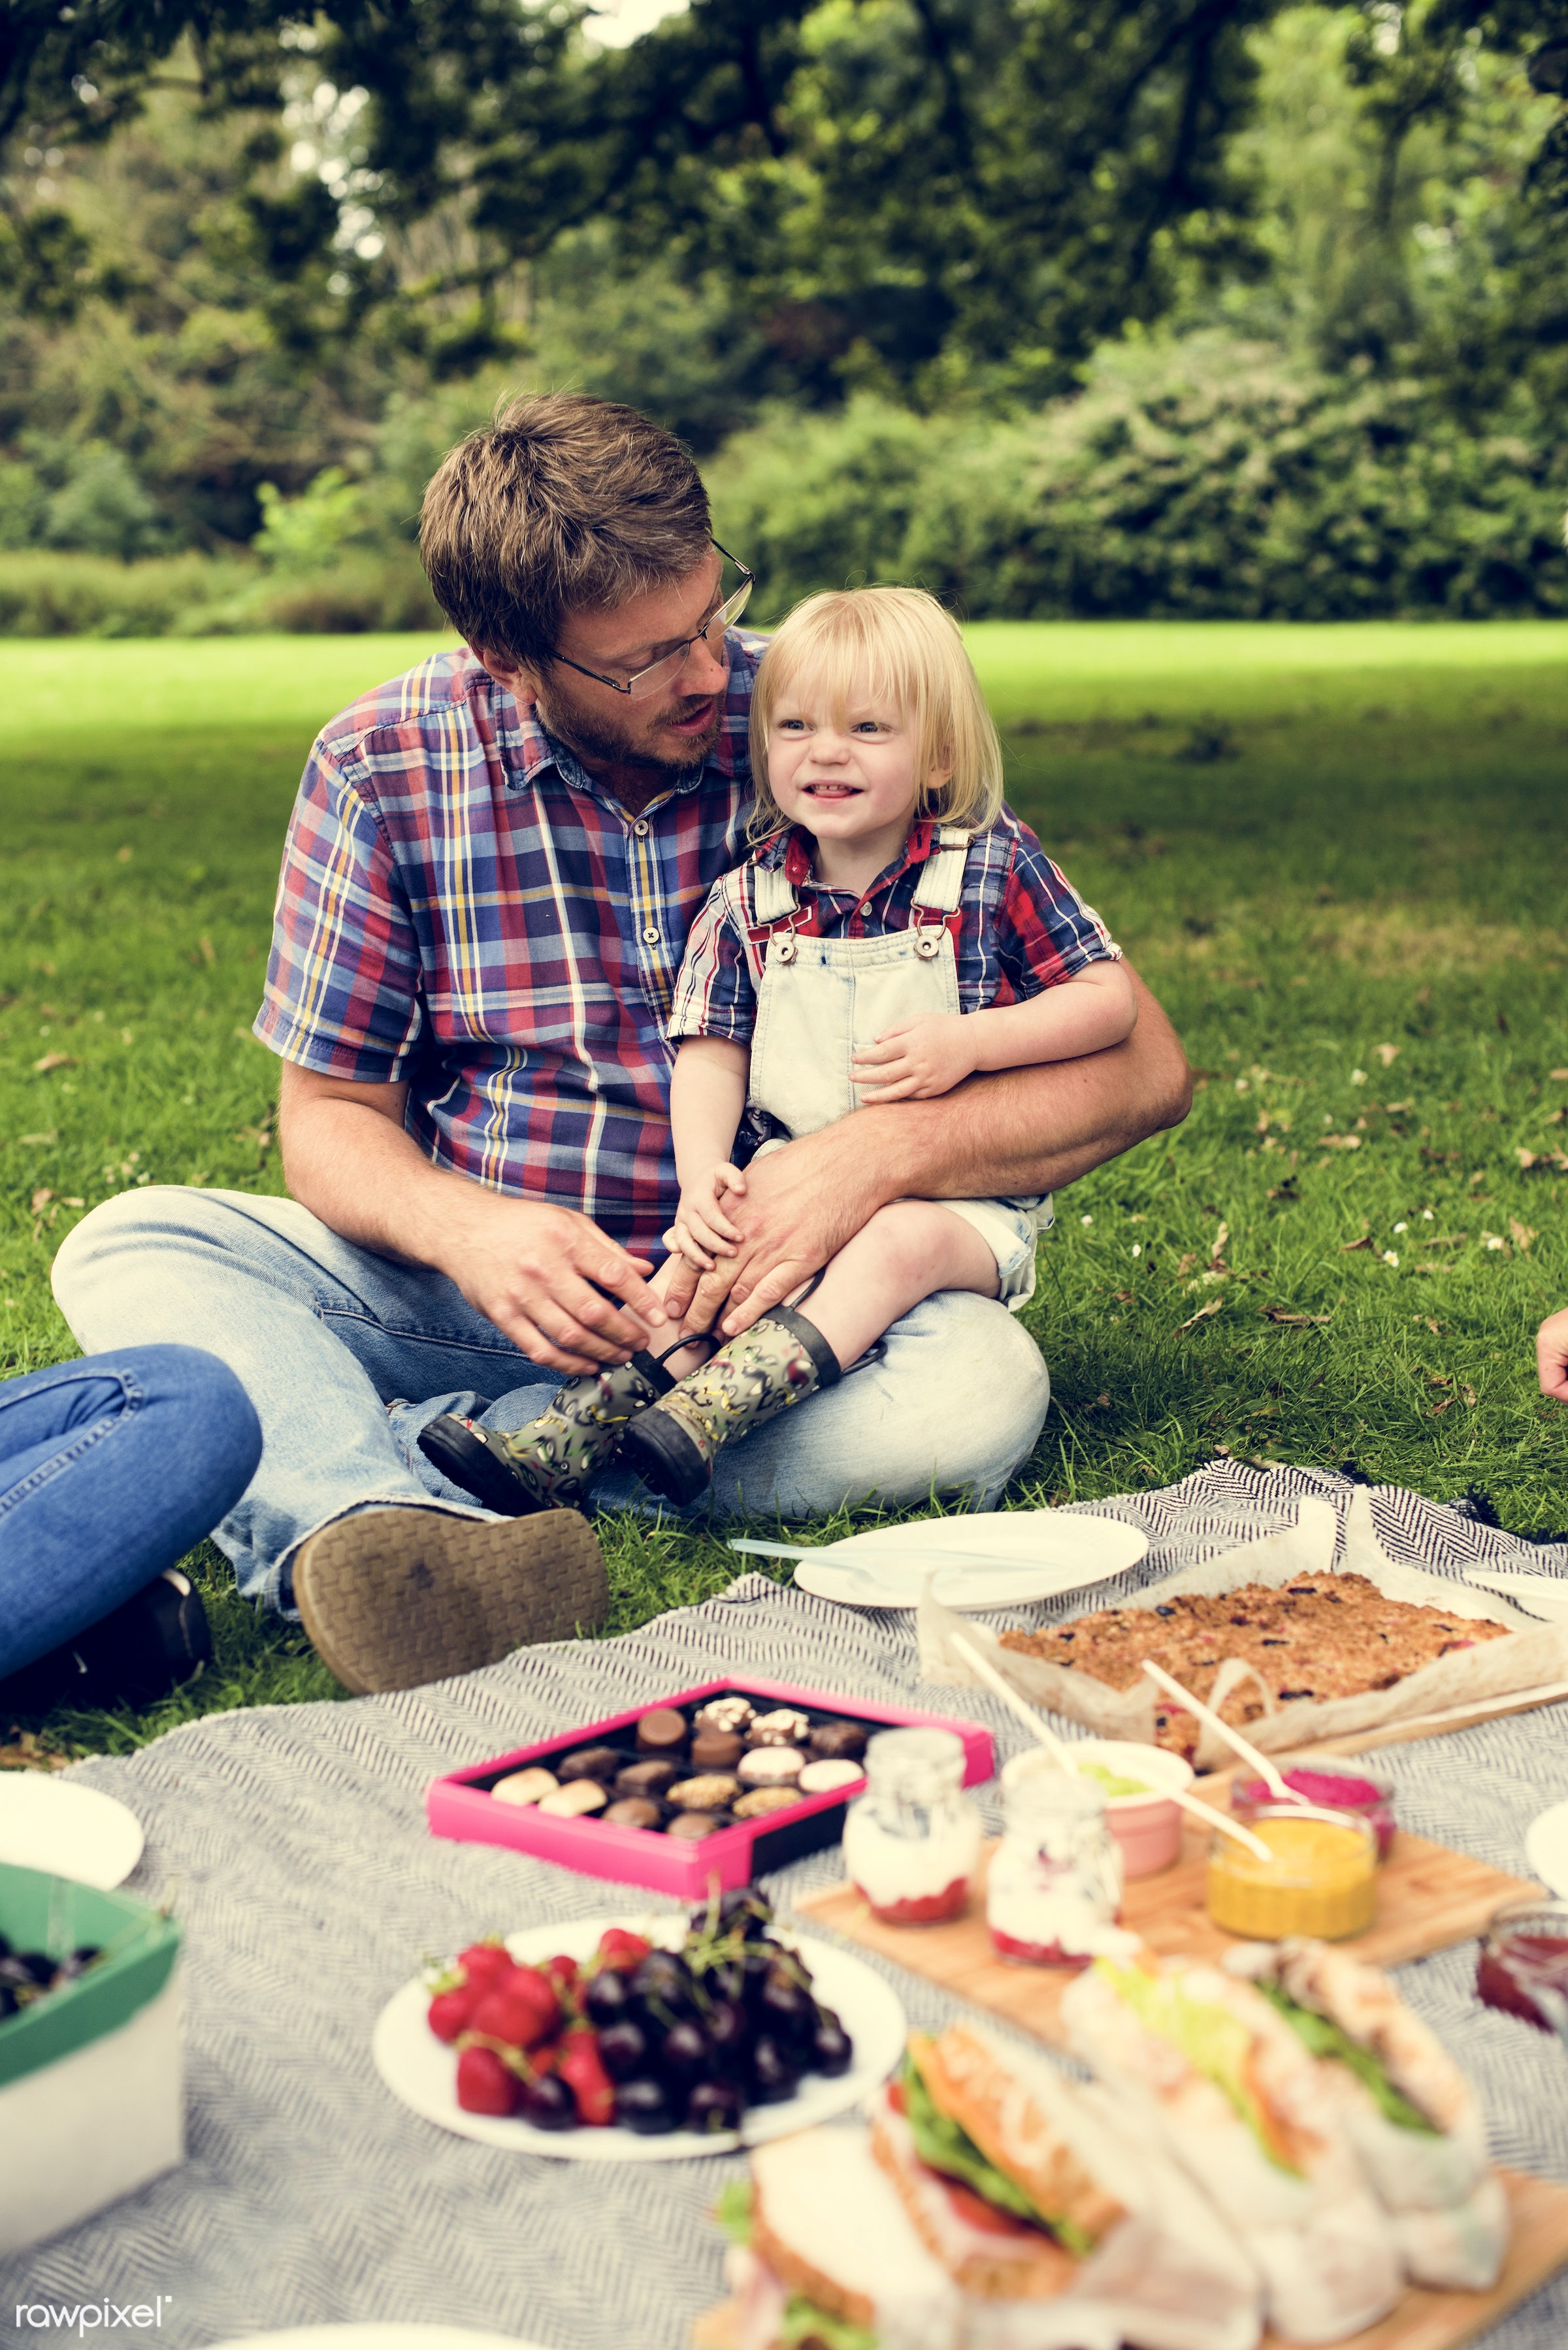 bonding, boy, care, casual, cheerful, child, childhood, chocolate, enjoyment, environmental, family, father, field, food,...